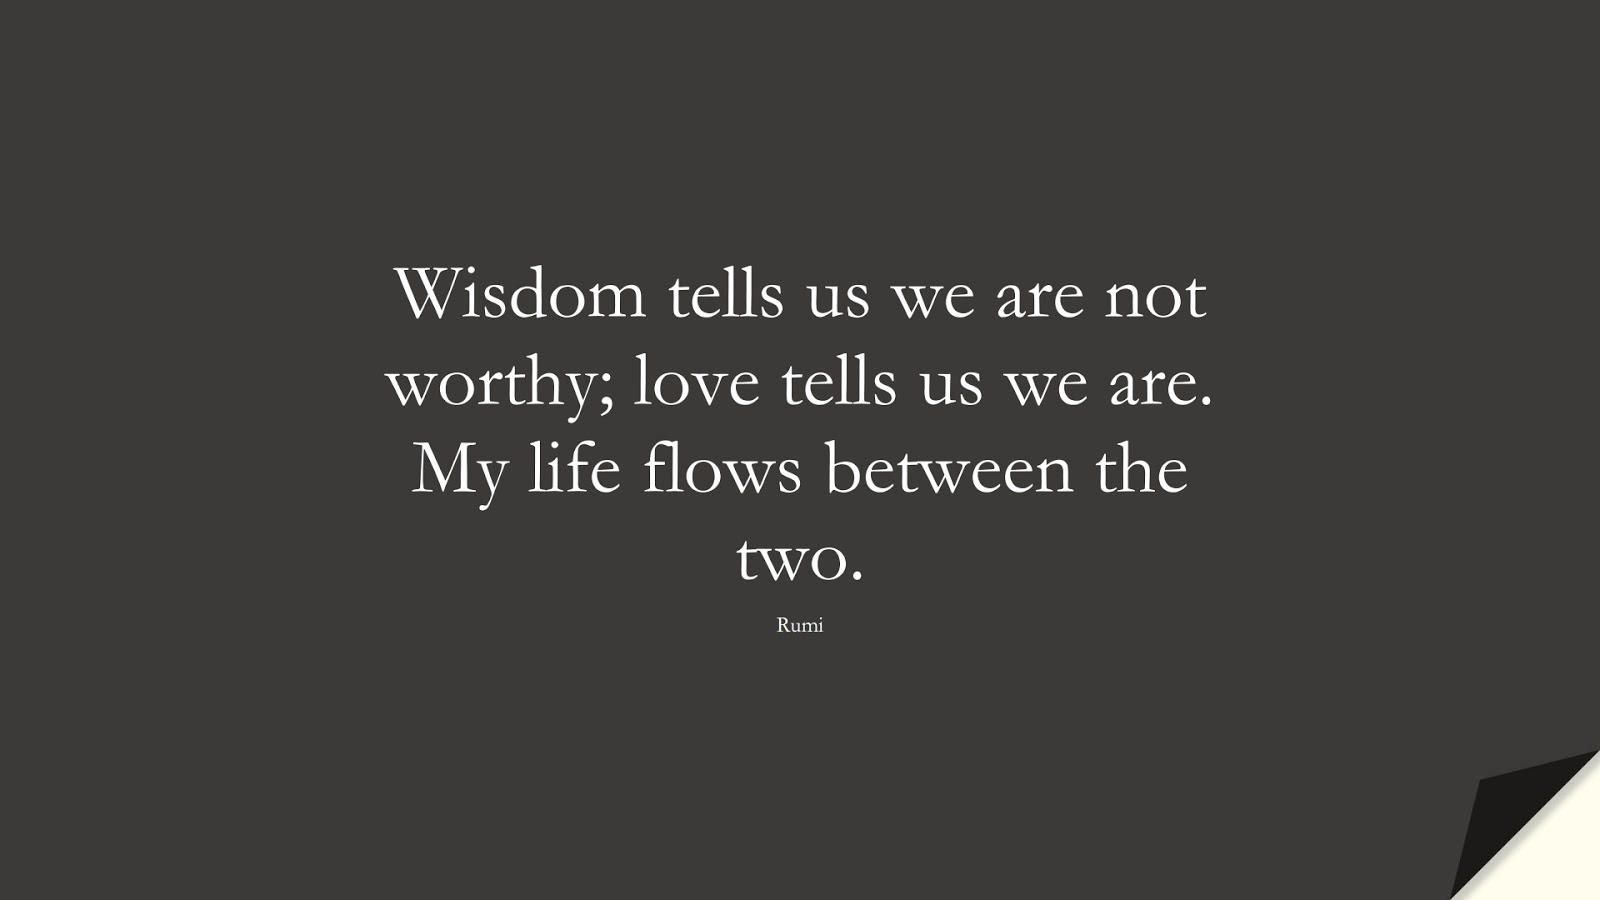 Wisdom tells us we are not worthy; love tells us we are. My life flows between the two. (Rumi);  #RumiQuotes